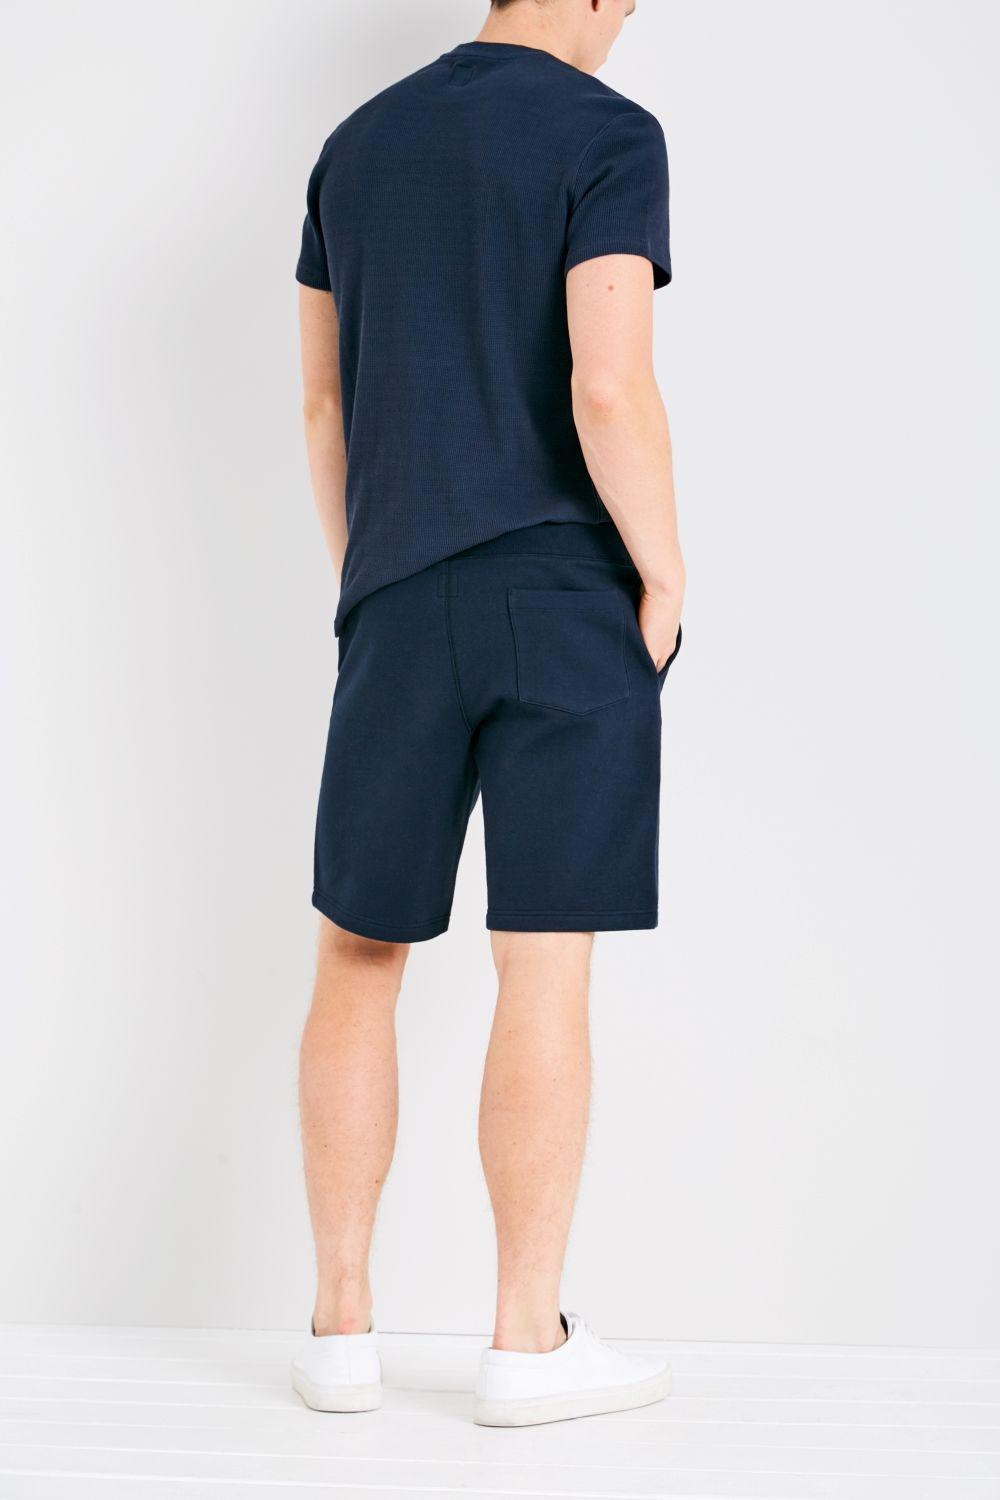 6bb1fbef7e Lyst - Jack Wills Balmore Sweatshorts in Blue for Men